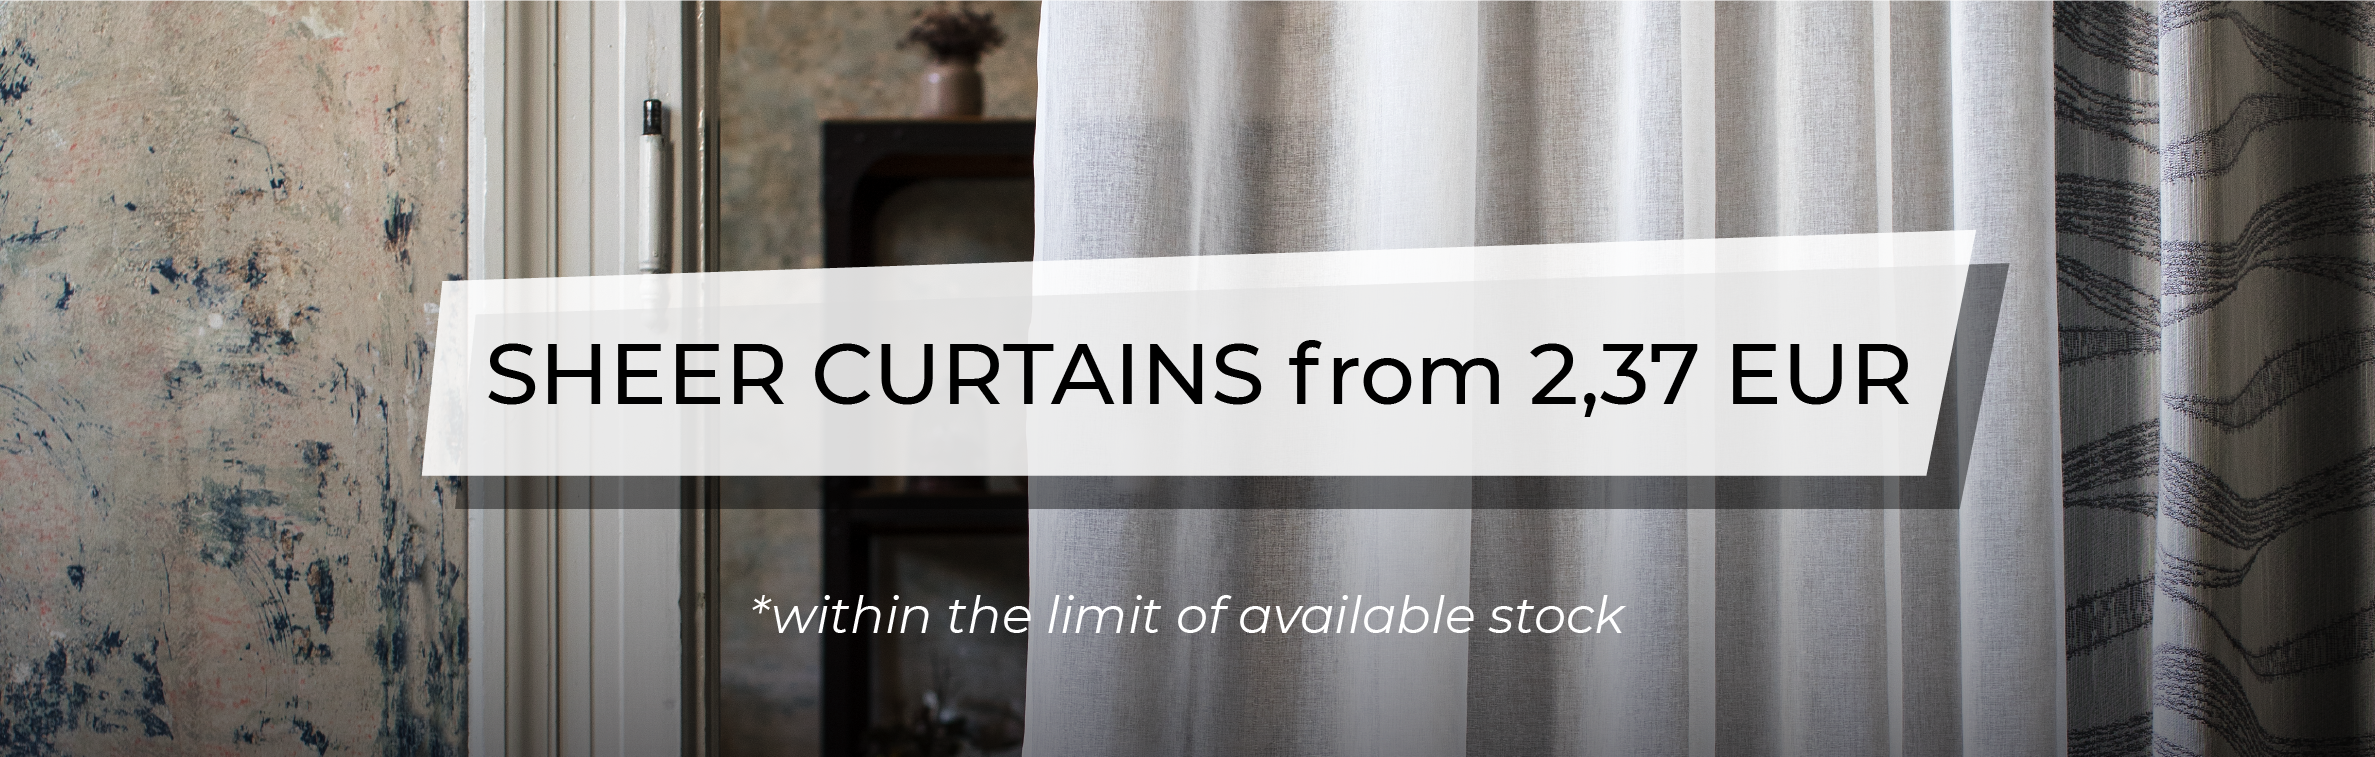 December Promotion - Sheer Curtains